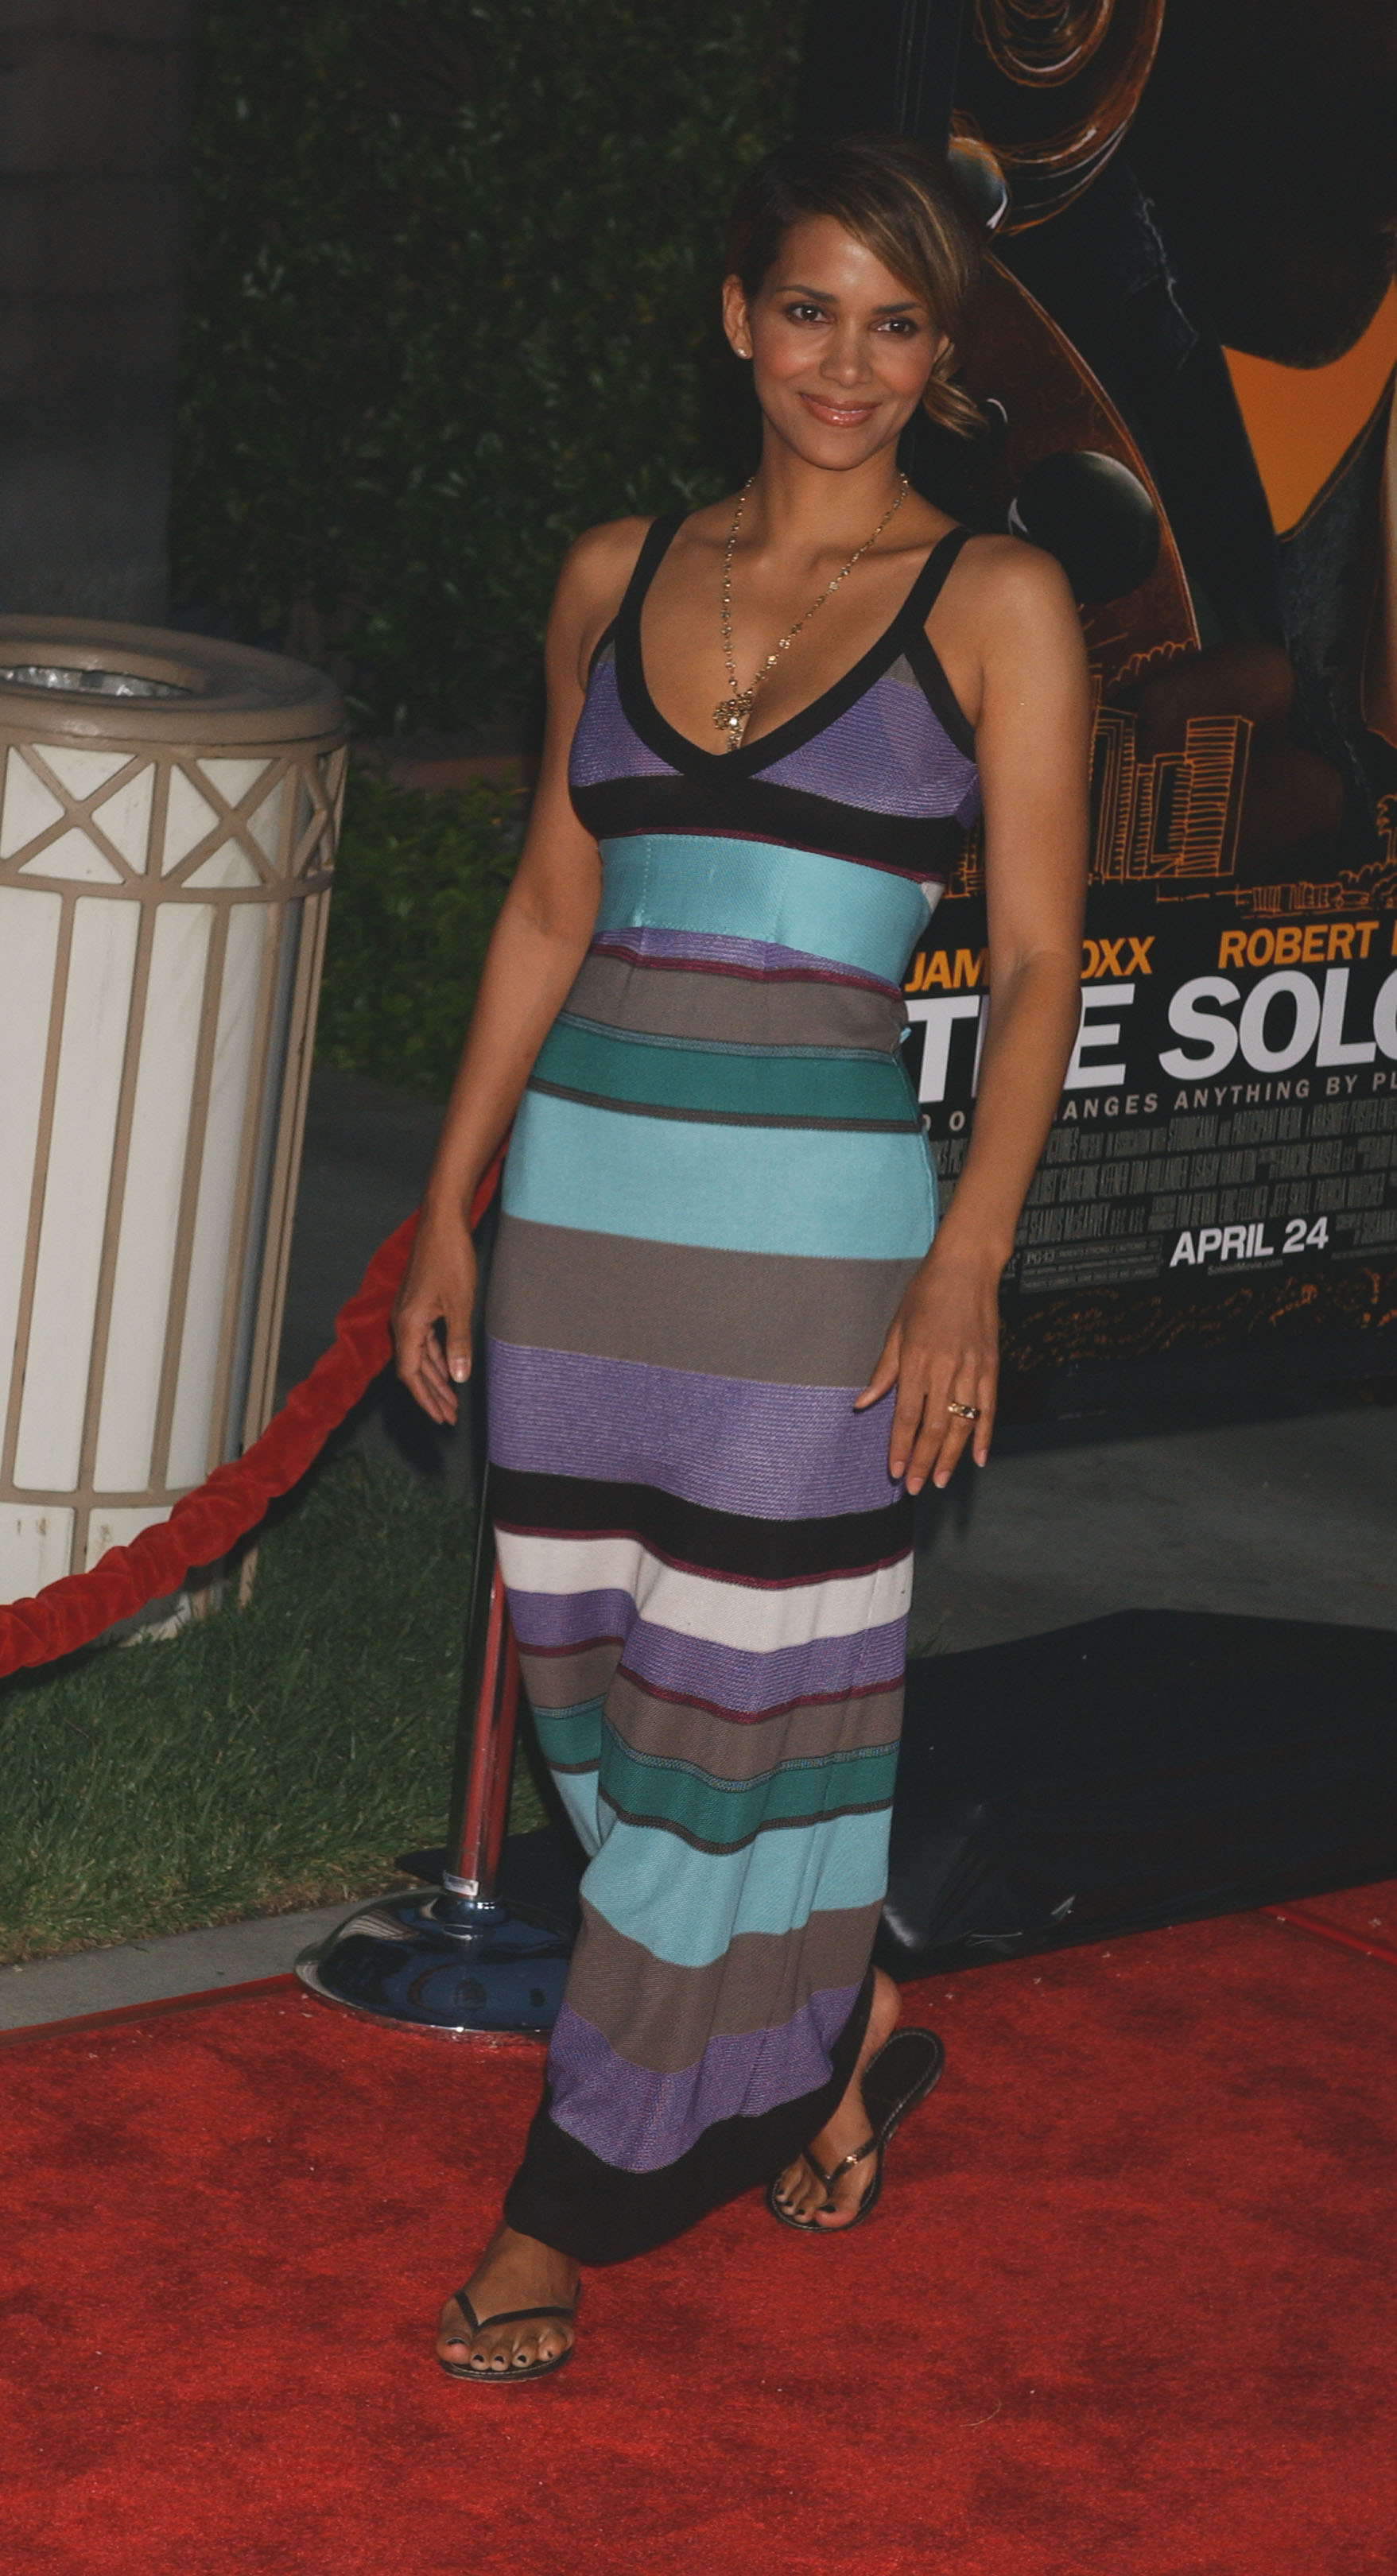 65633_Halle_Berry_The_Soloist_premiere_in_Los_Angeles_51_122_692lo.jpg